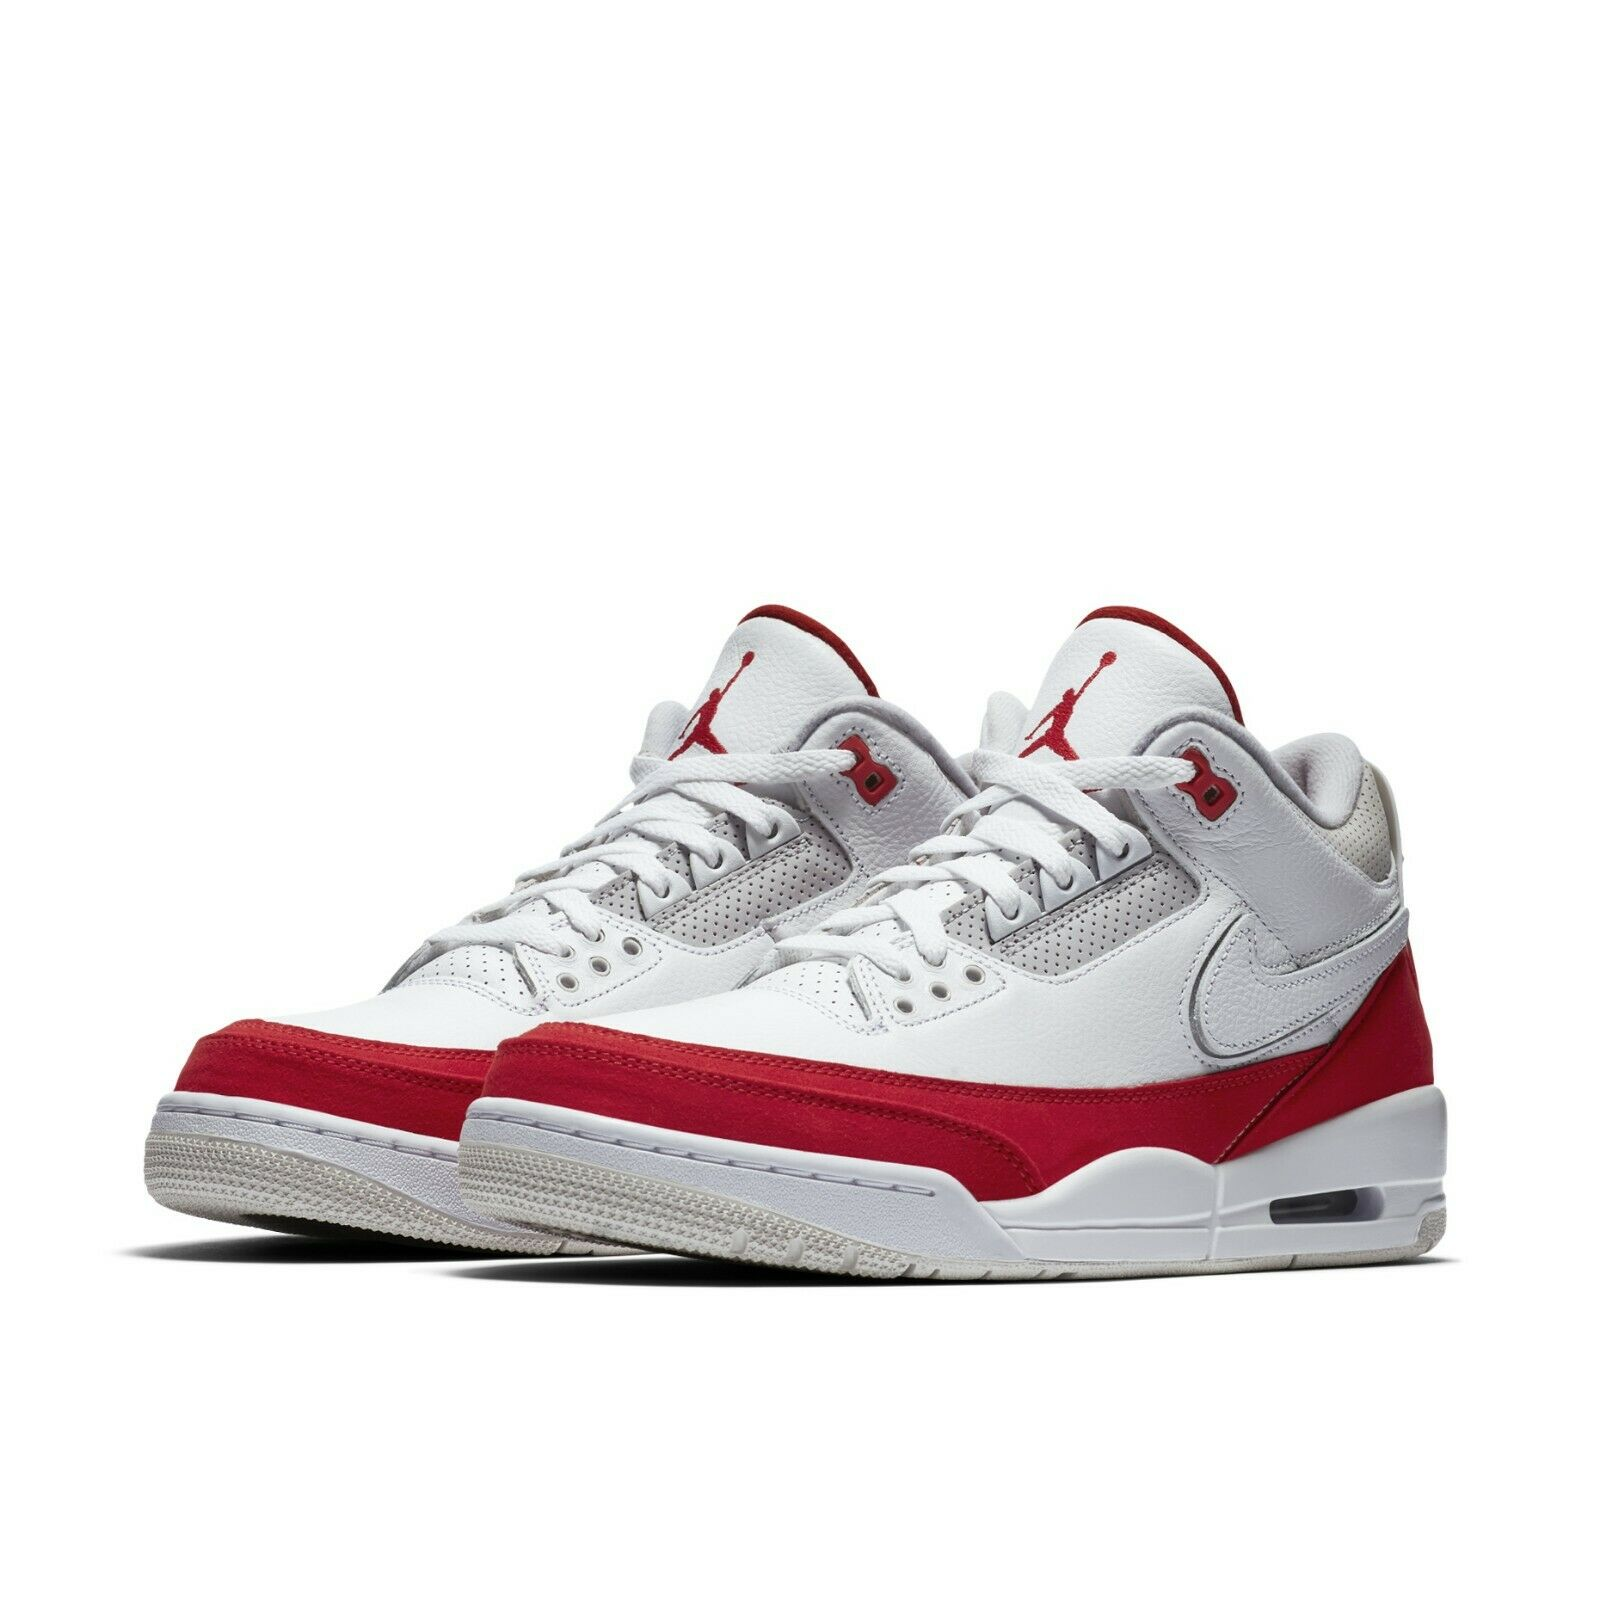 watch 1b360 6e7f0 Details about Nike Air Jordan 3 Retro TH SP Tinker Hatfield Air Max 1 AJ3  White Red CJ0939-100